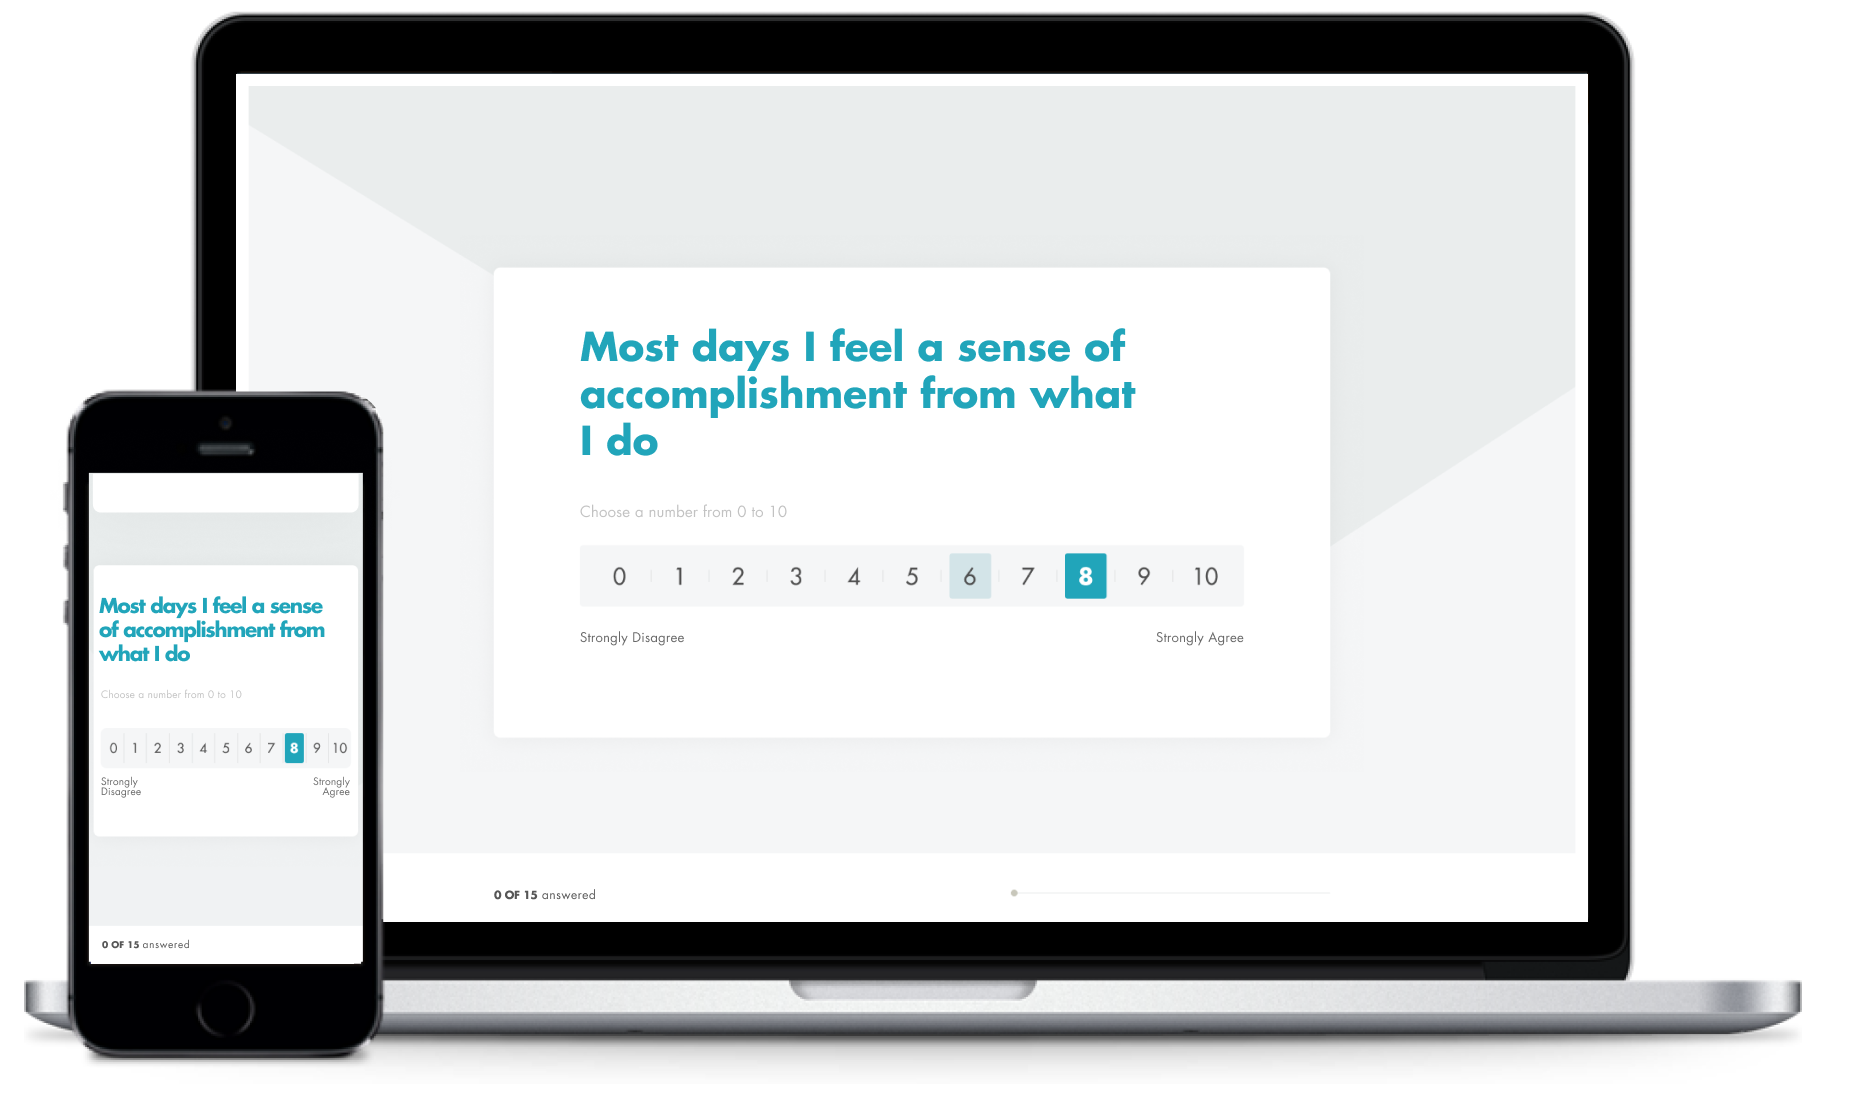 Getting started with Evi is easy and the survey takes only five minutes to complete.